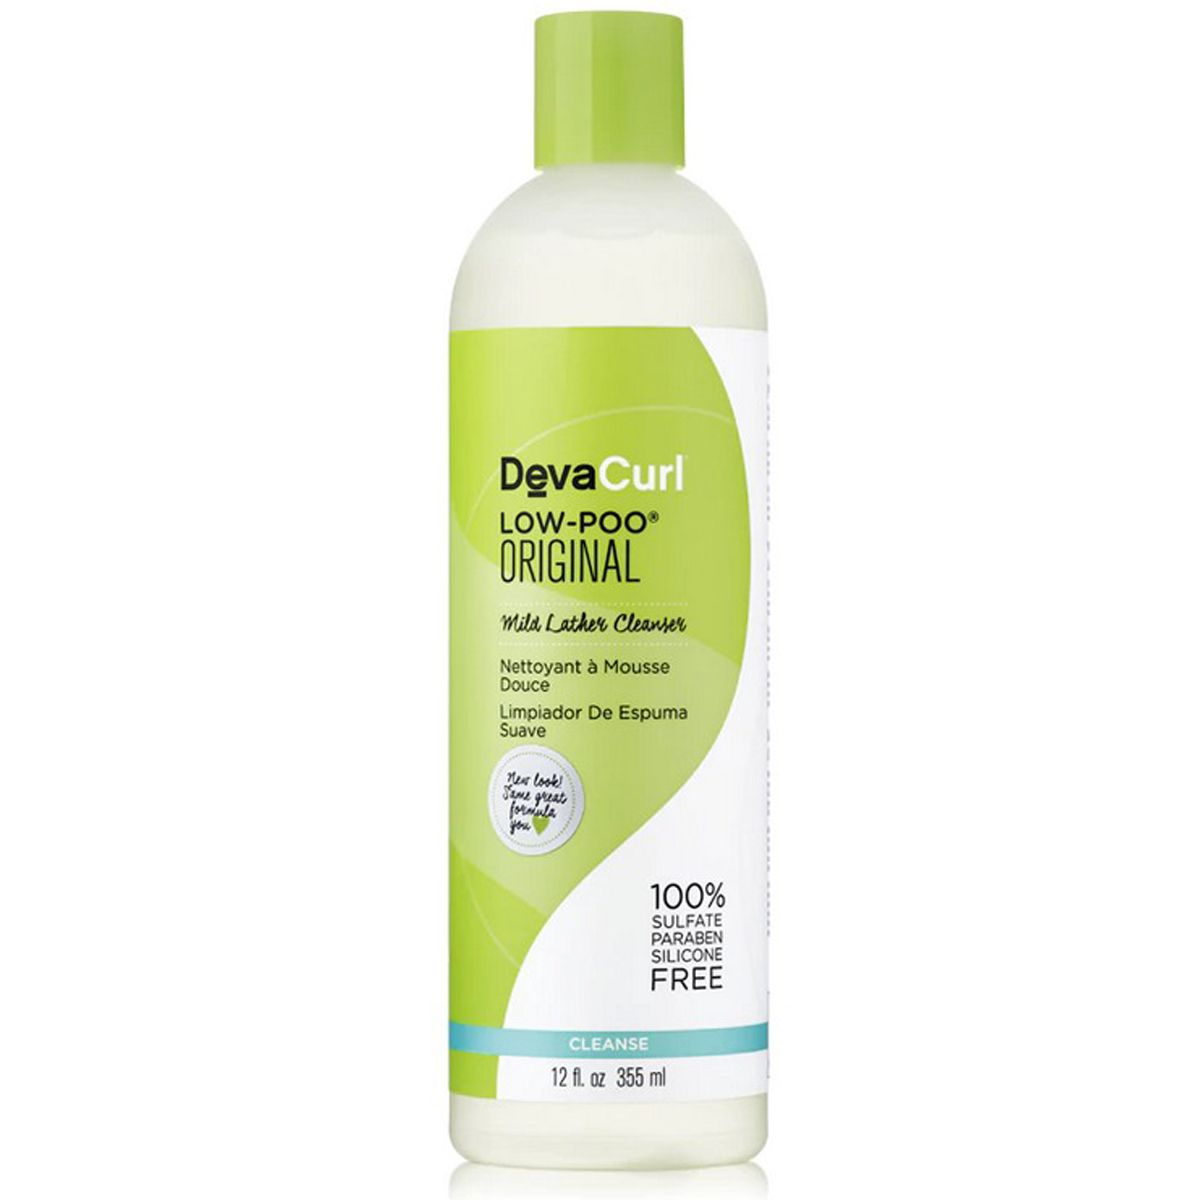 Low Poo Original - 355ml - Devacurl